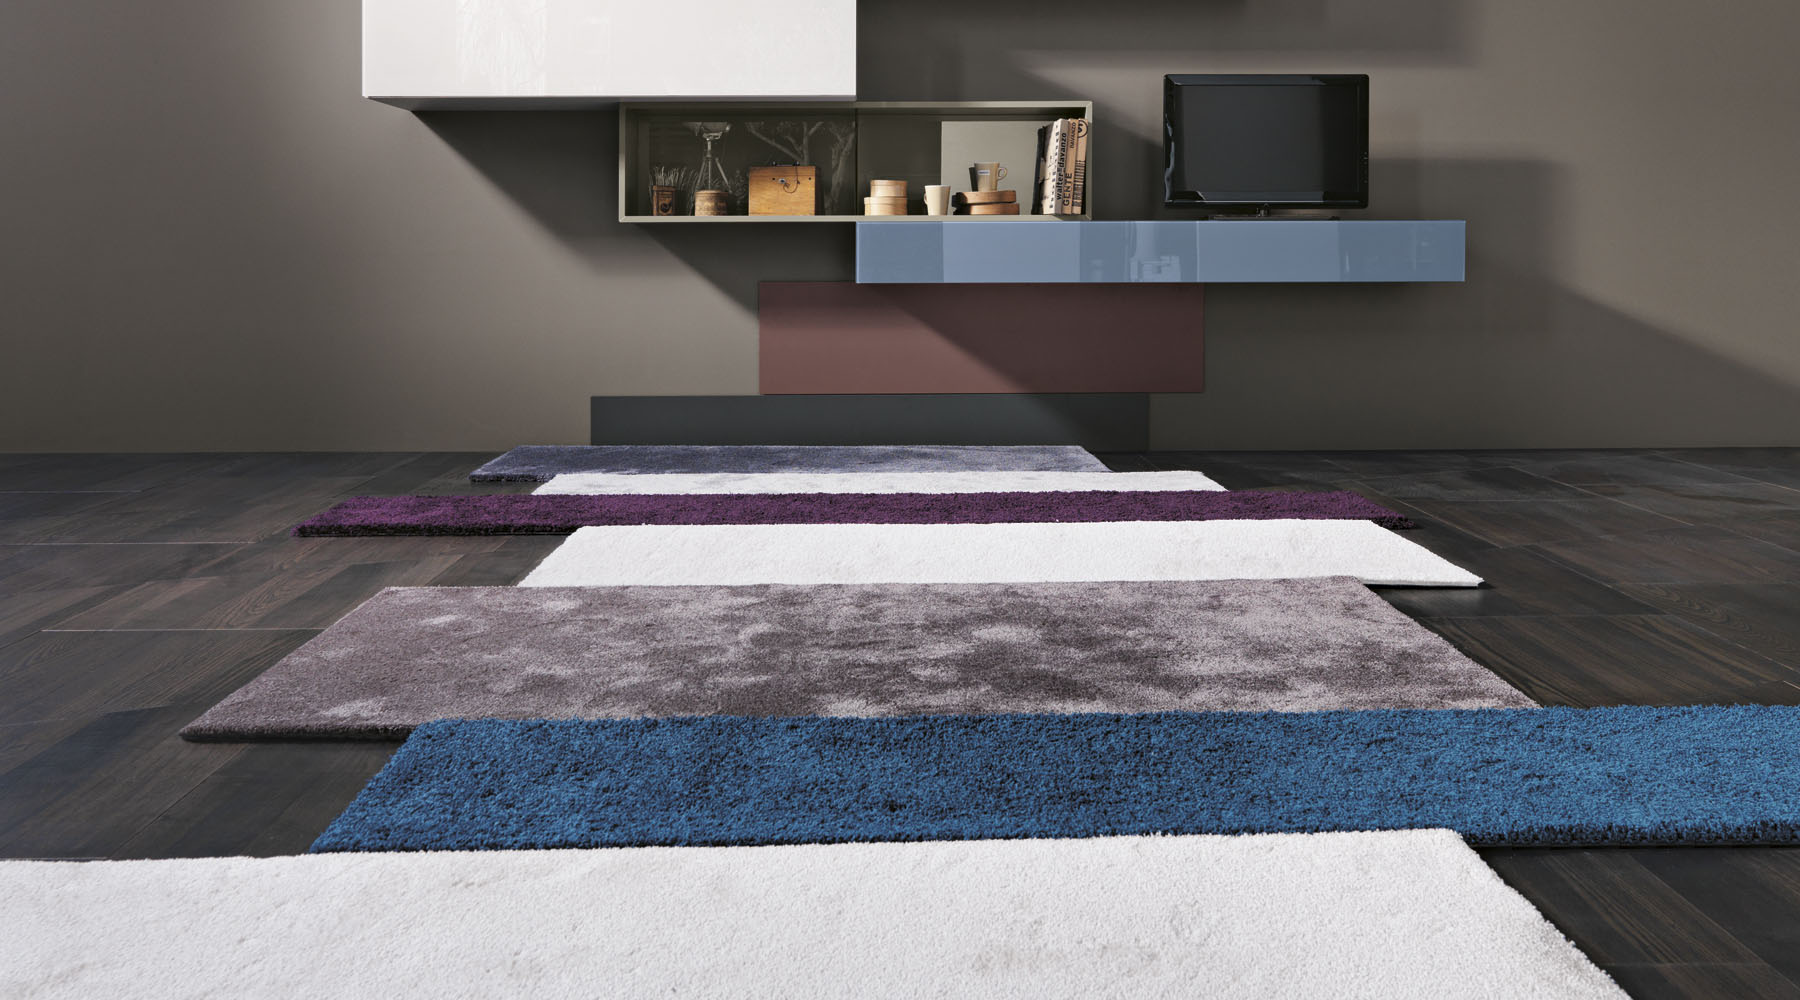 tappeti-colorati-made-in-italy-design-lago